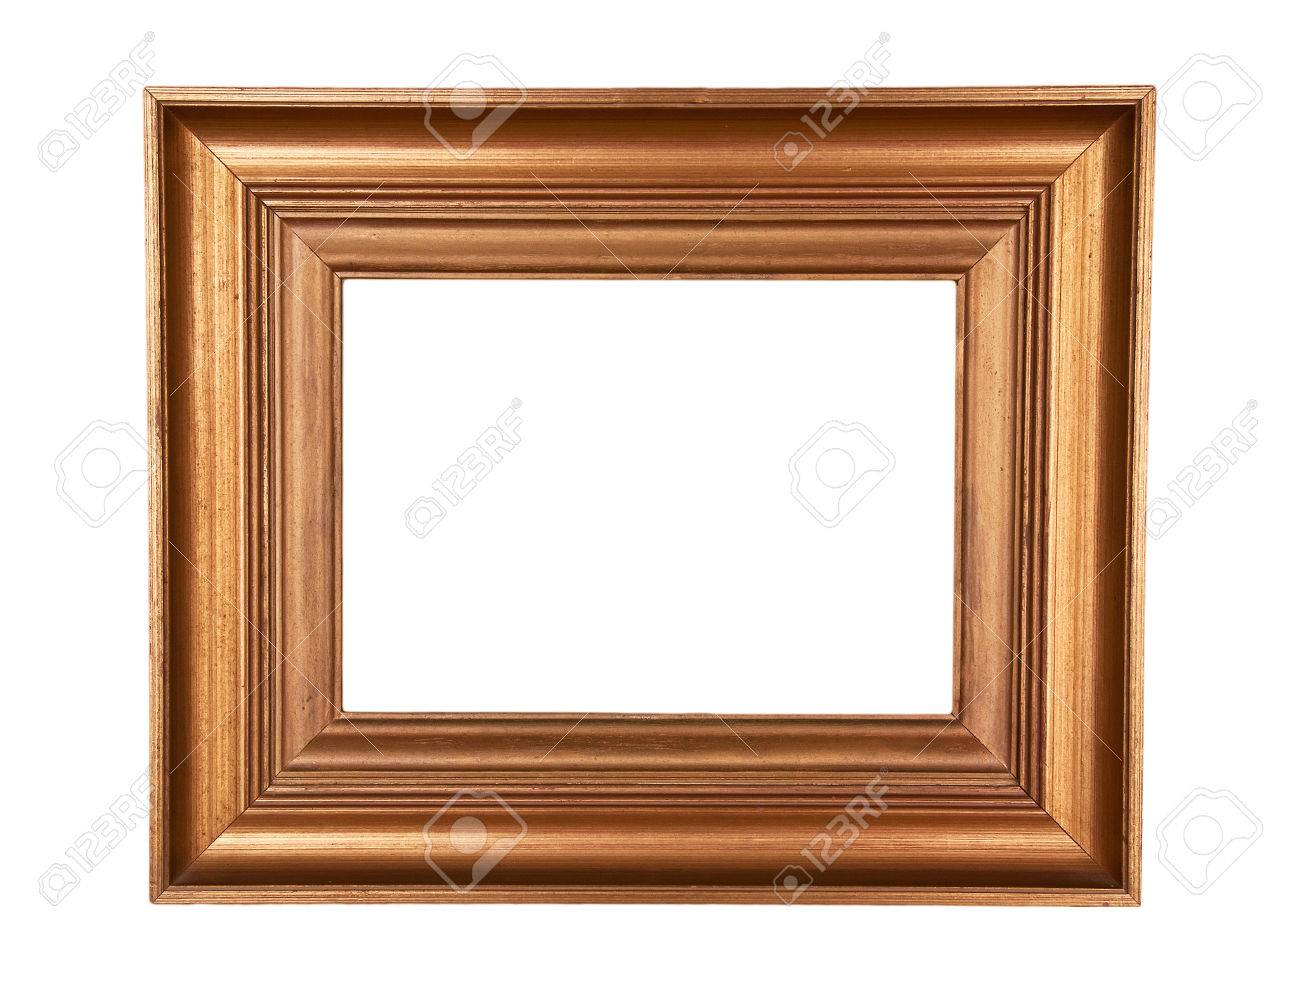 Antique Wood Frame With Classic Simple Design Gold Painted On ...